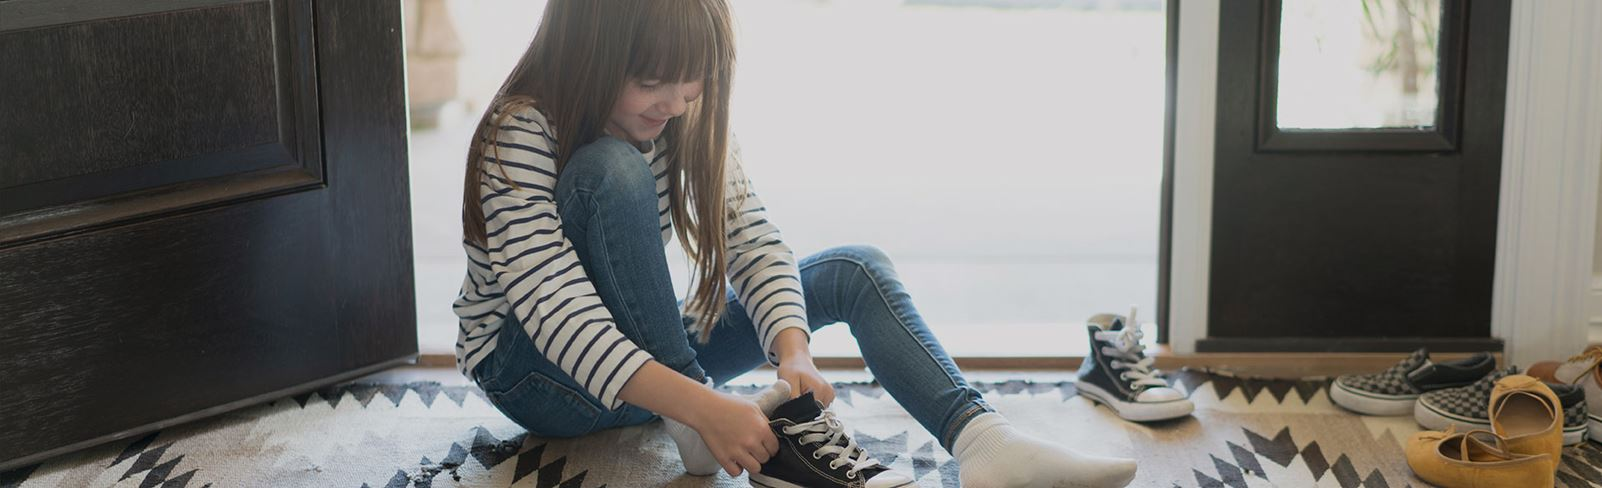 Little Girl Putting Shoes on in Her New Broomfield Colorado Home